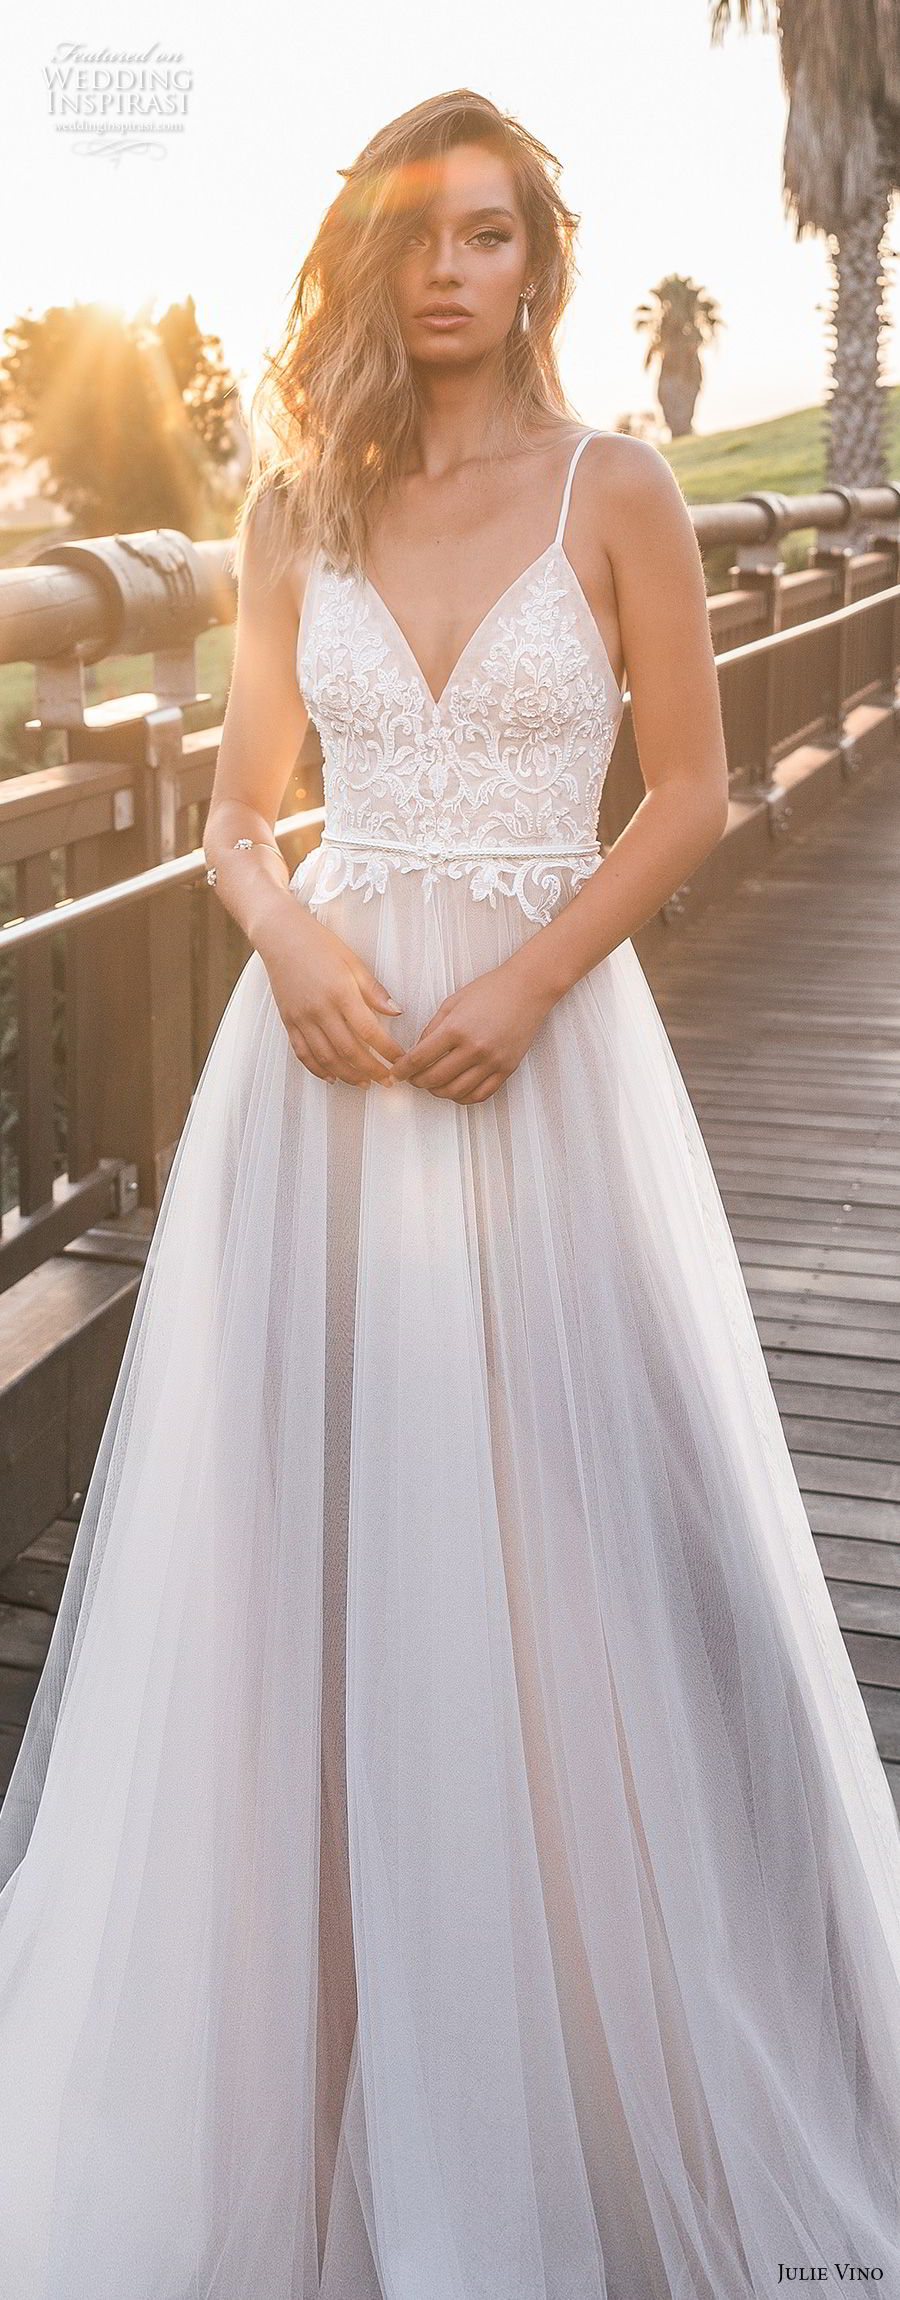 julie vino 2018 bridal thin strap spaghetti strap deep sweetheart neckline heavily embellished bodice romantic soft a line wedding dress open back royal train (61) lv